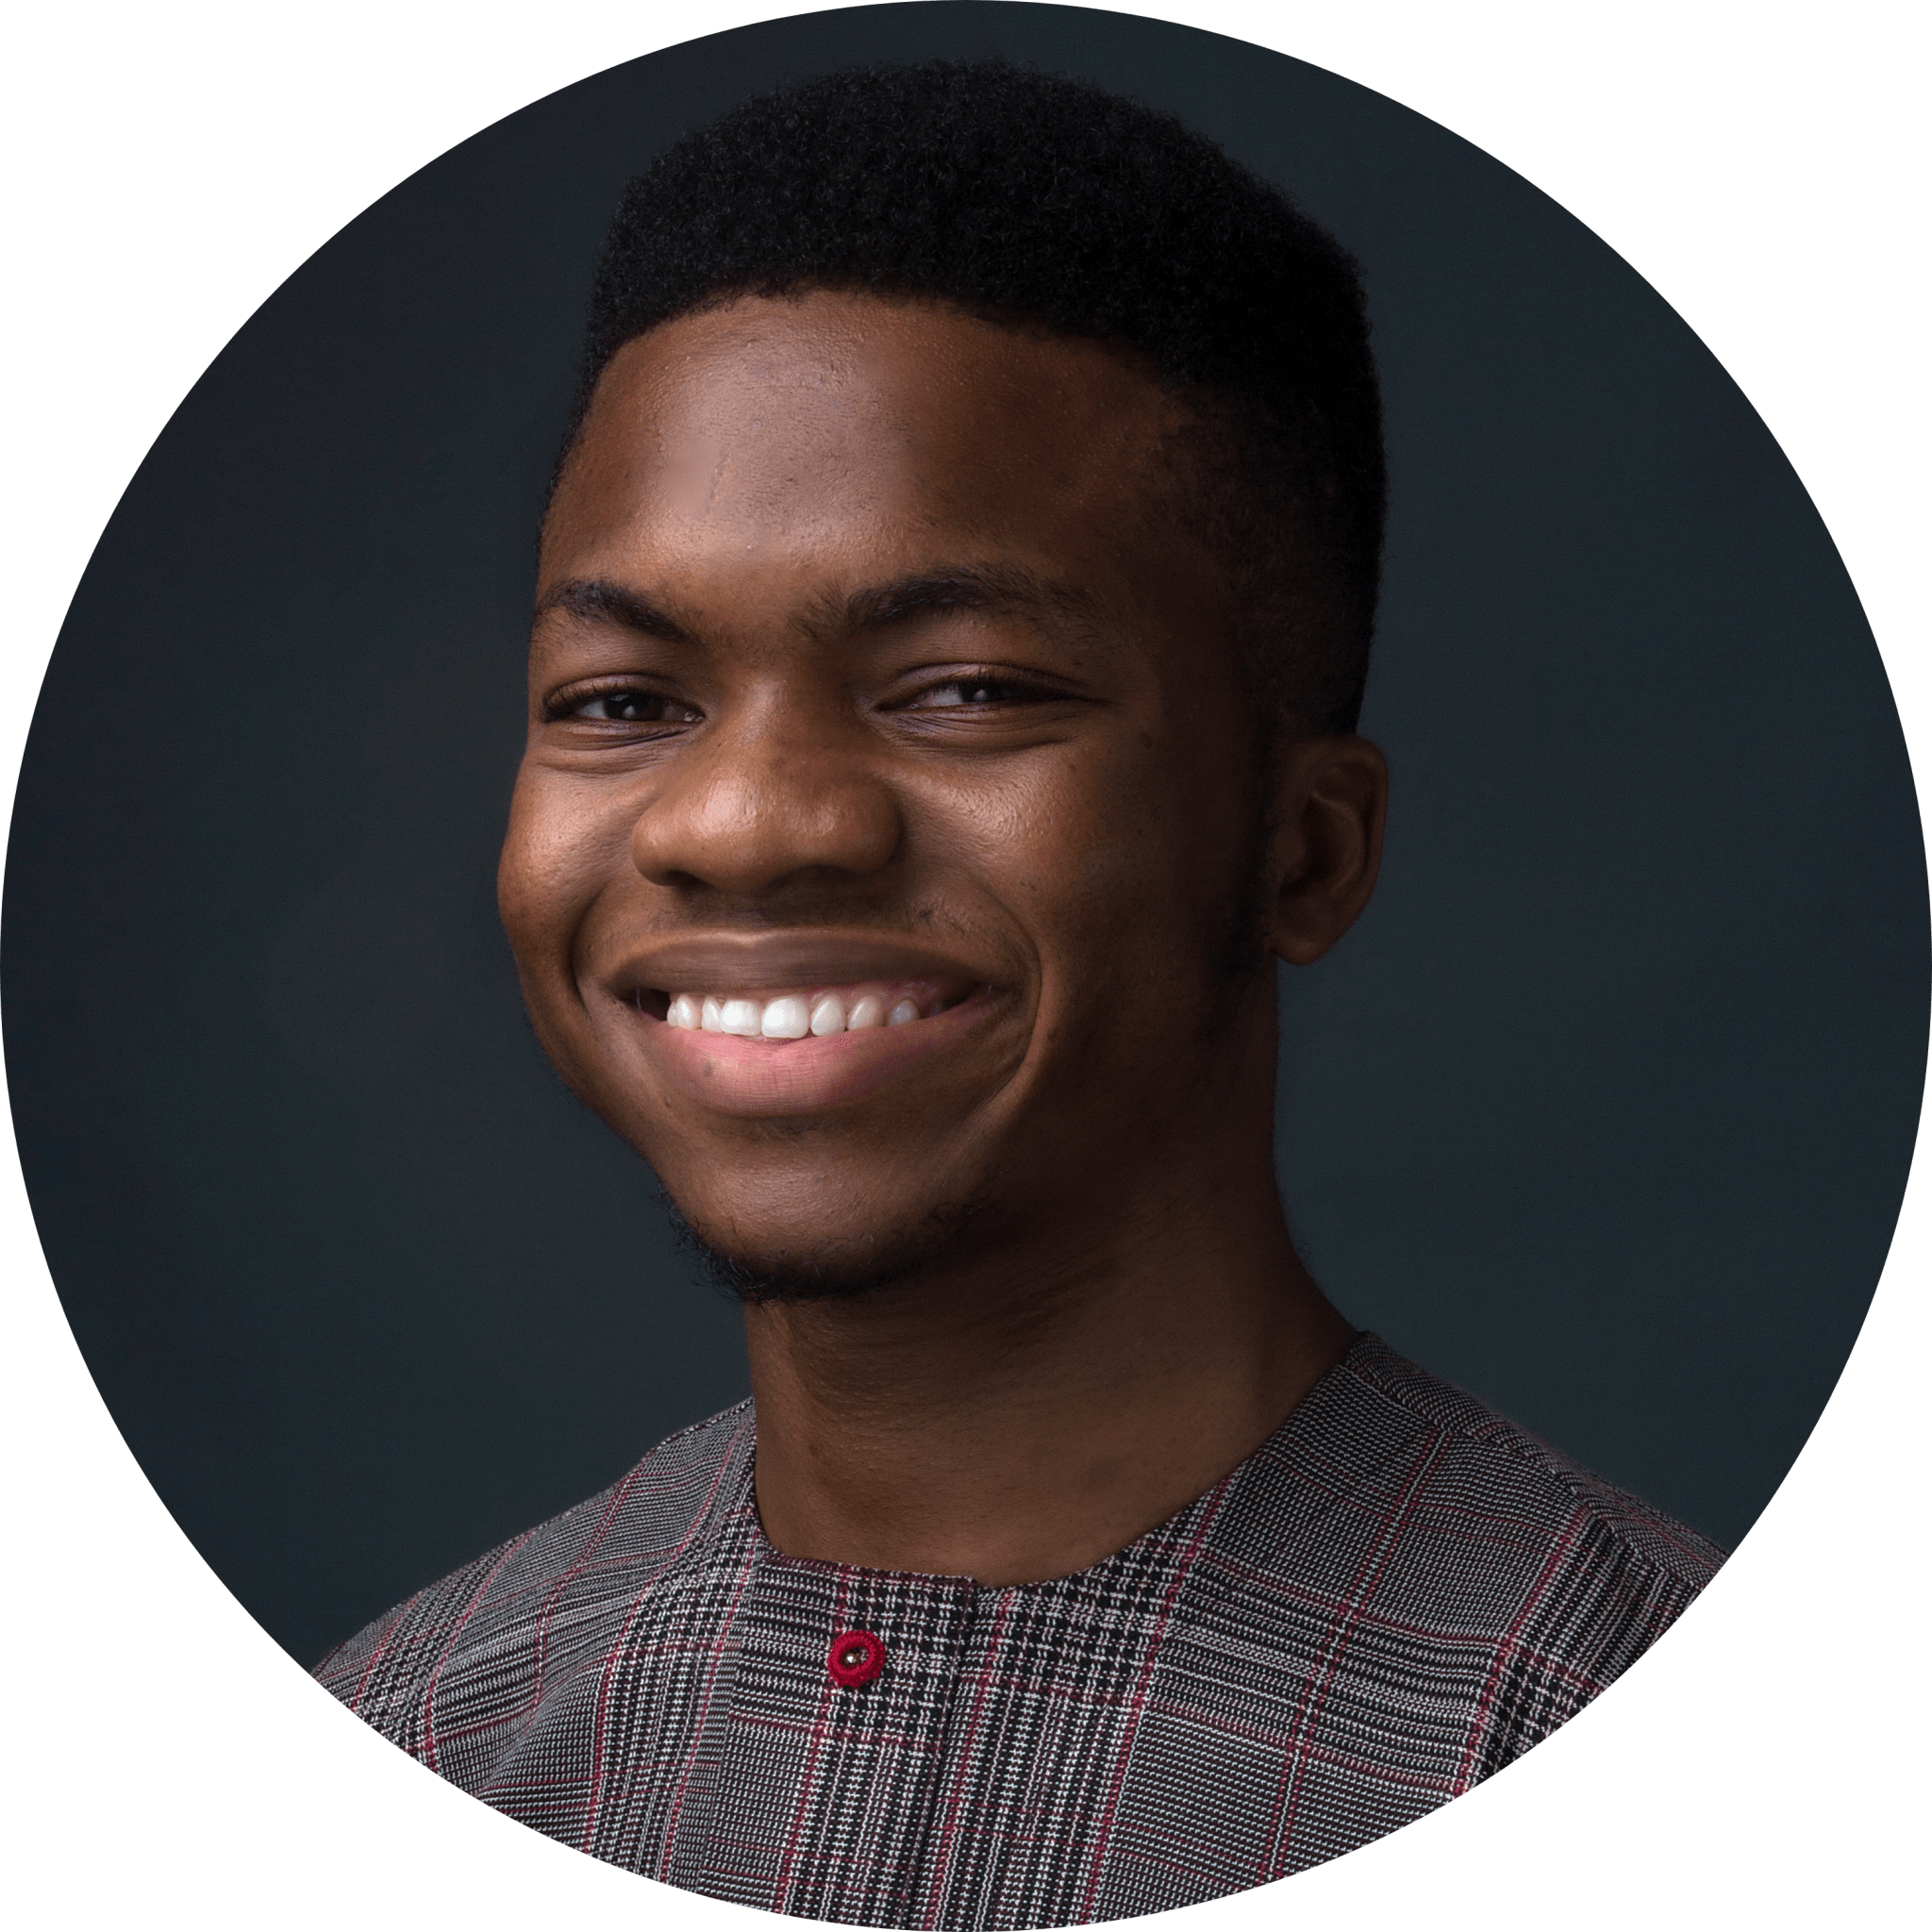 Hassan Taiwo Yahaya profile pictures for Diabetes Africa biography